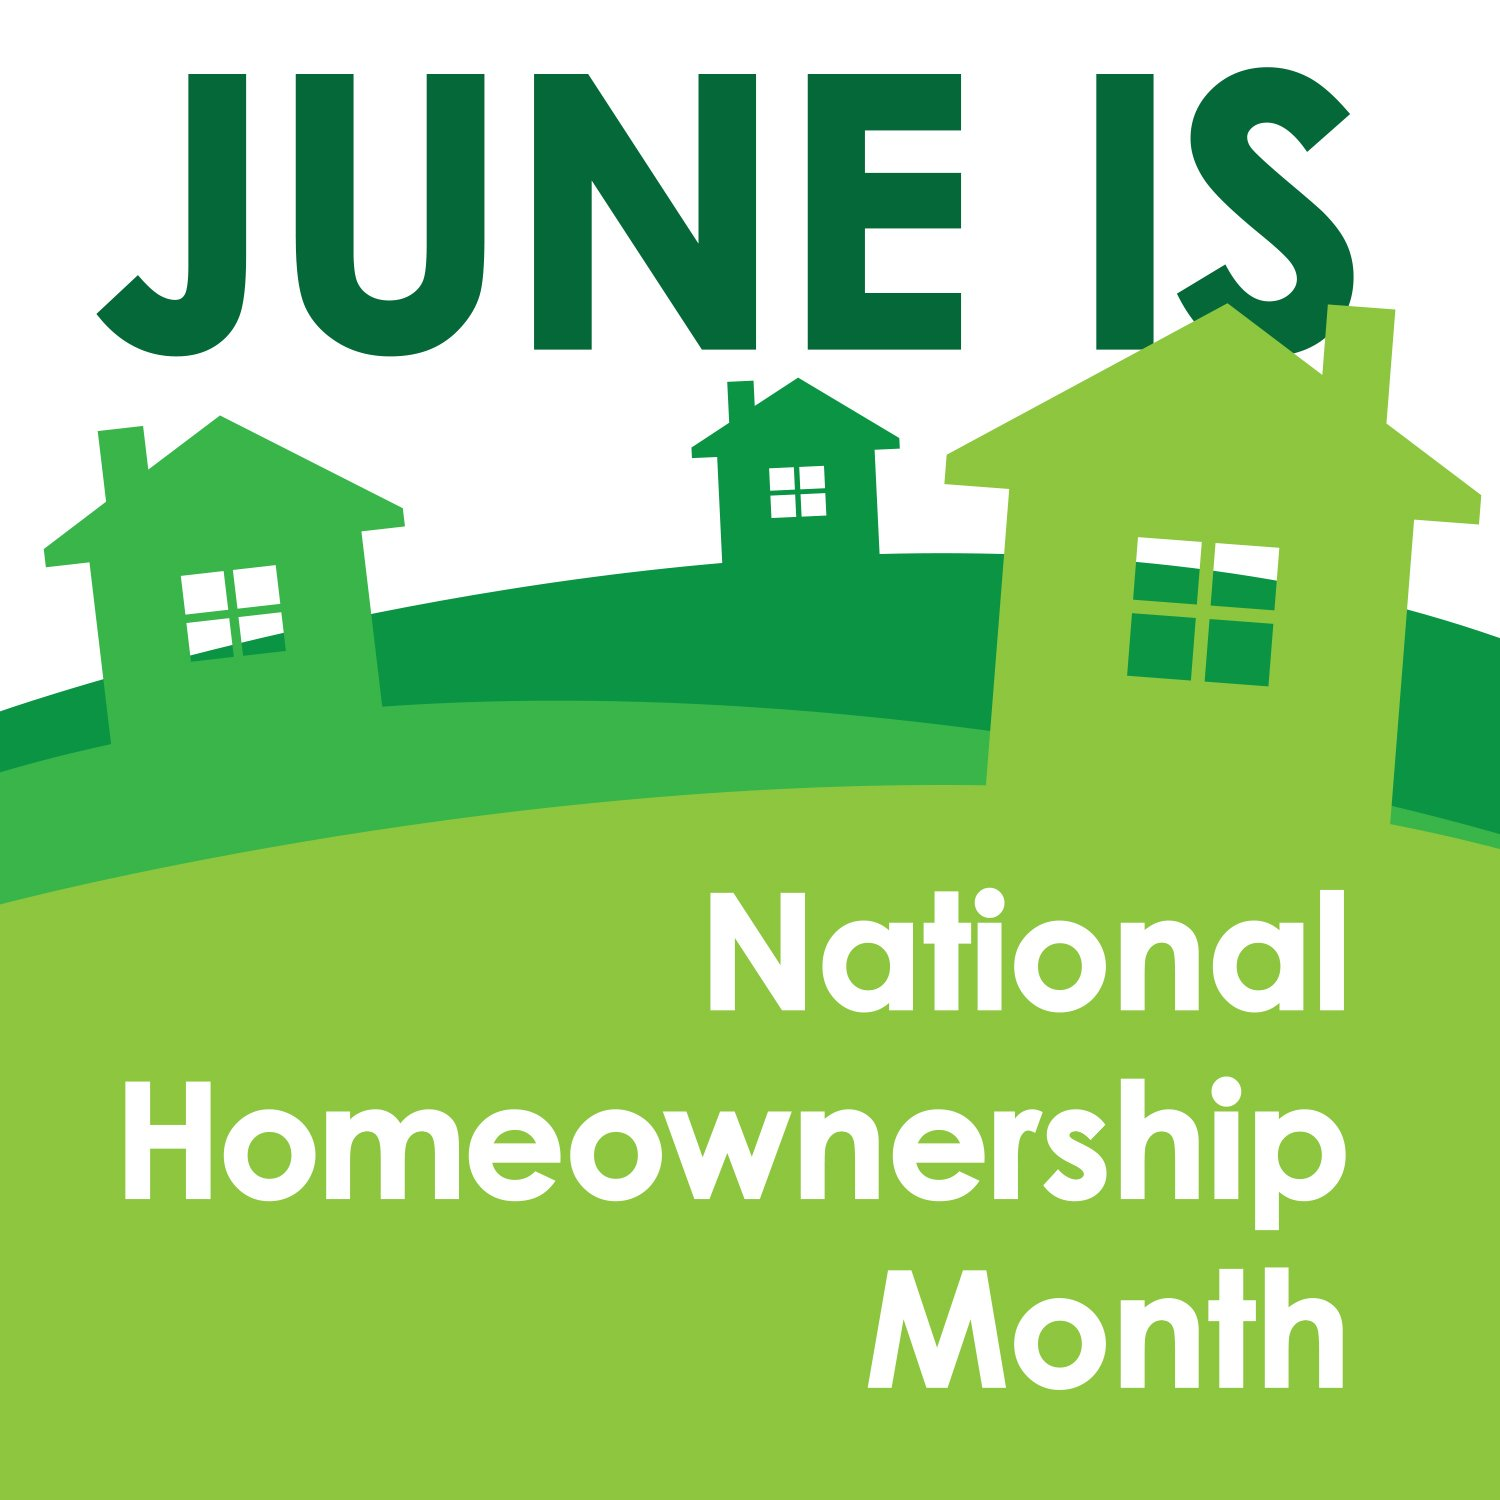 Logo released to acknowledge National Homeownership Month